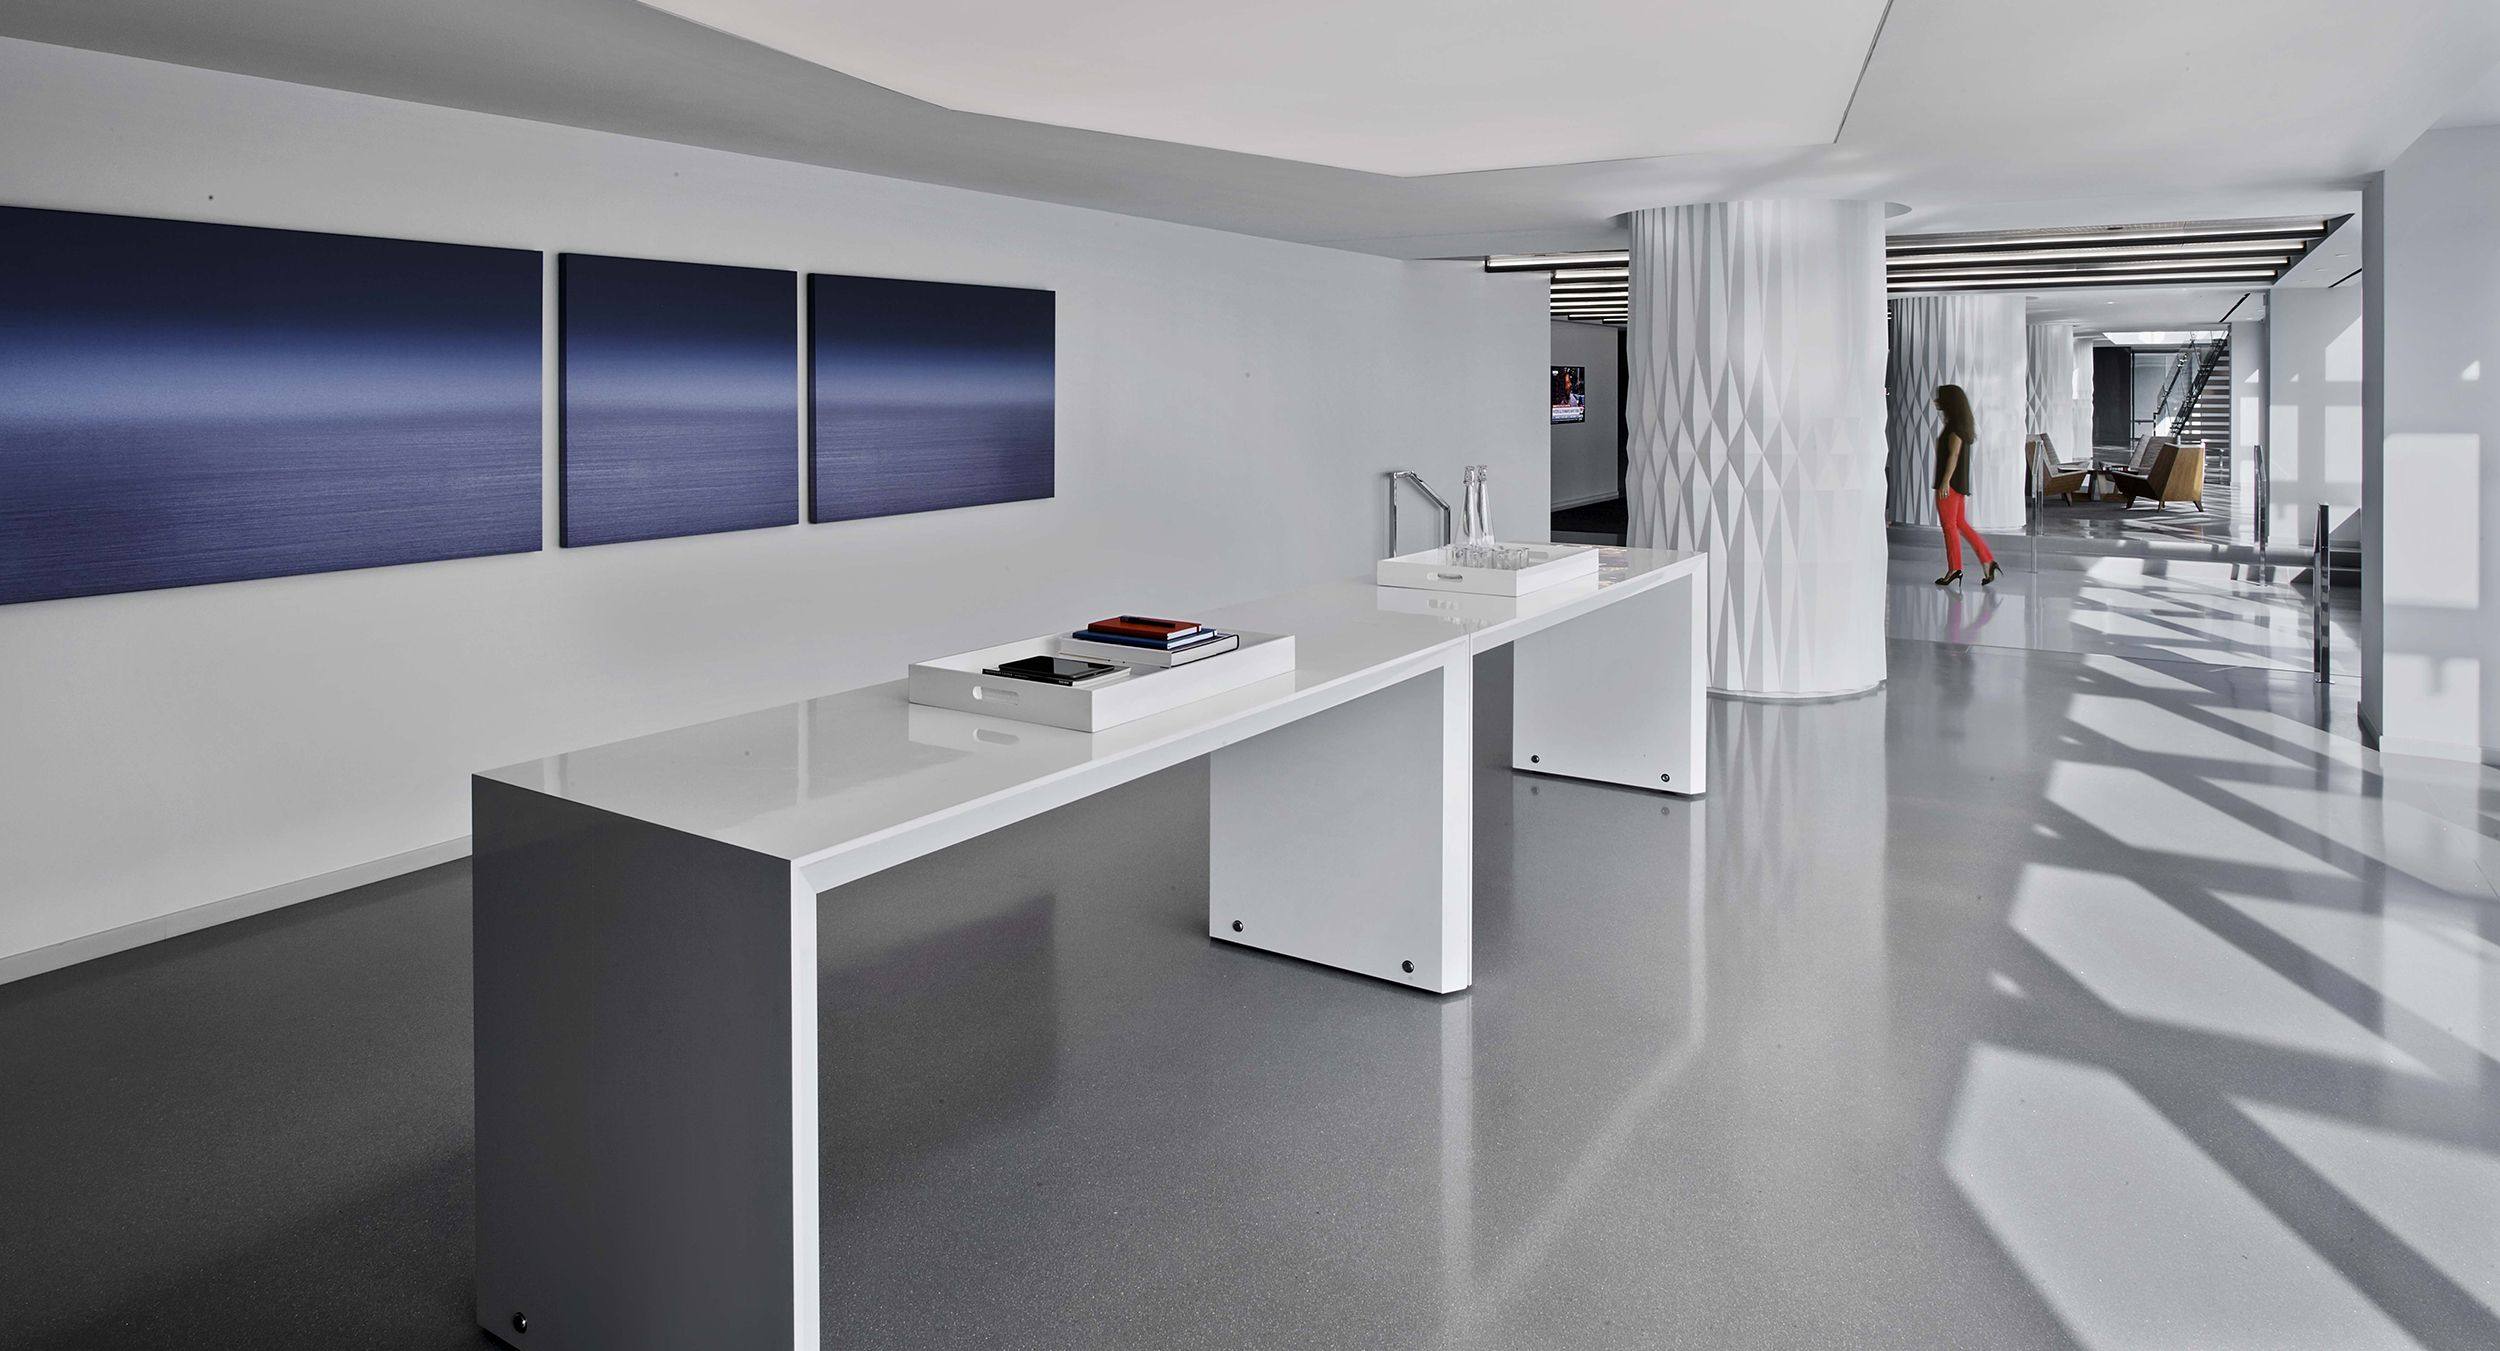 HUGO tables were custom-designed to meet the desired project aesthetics.